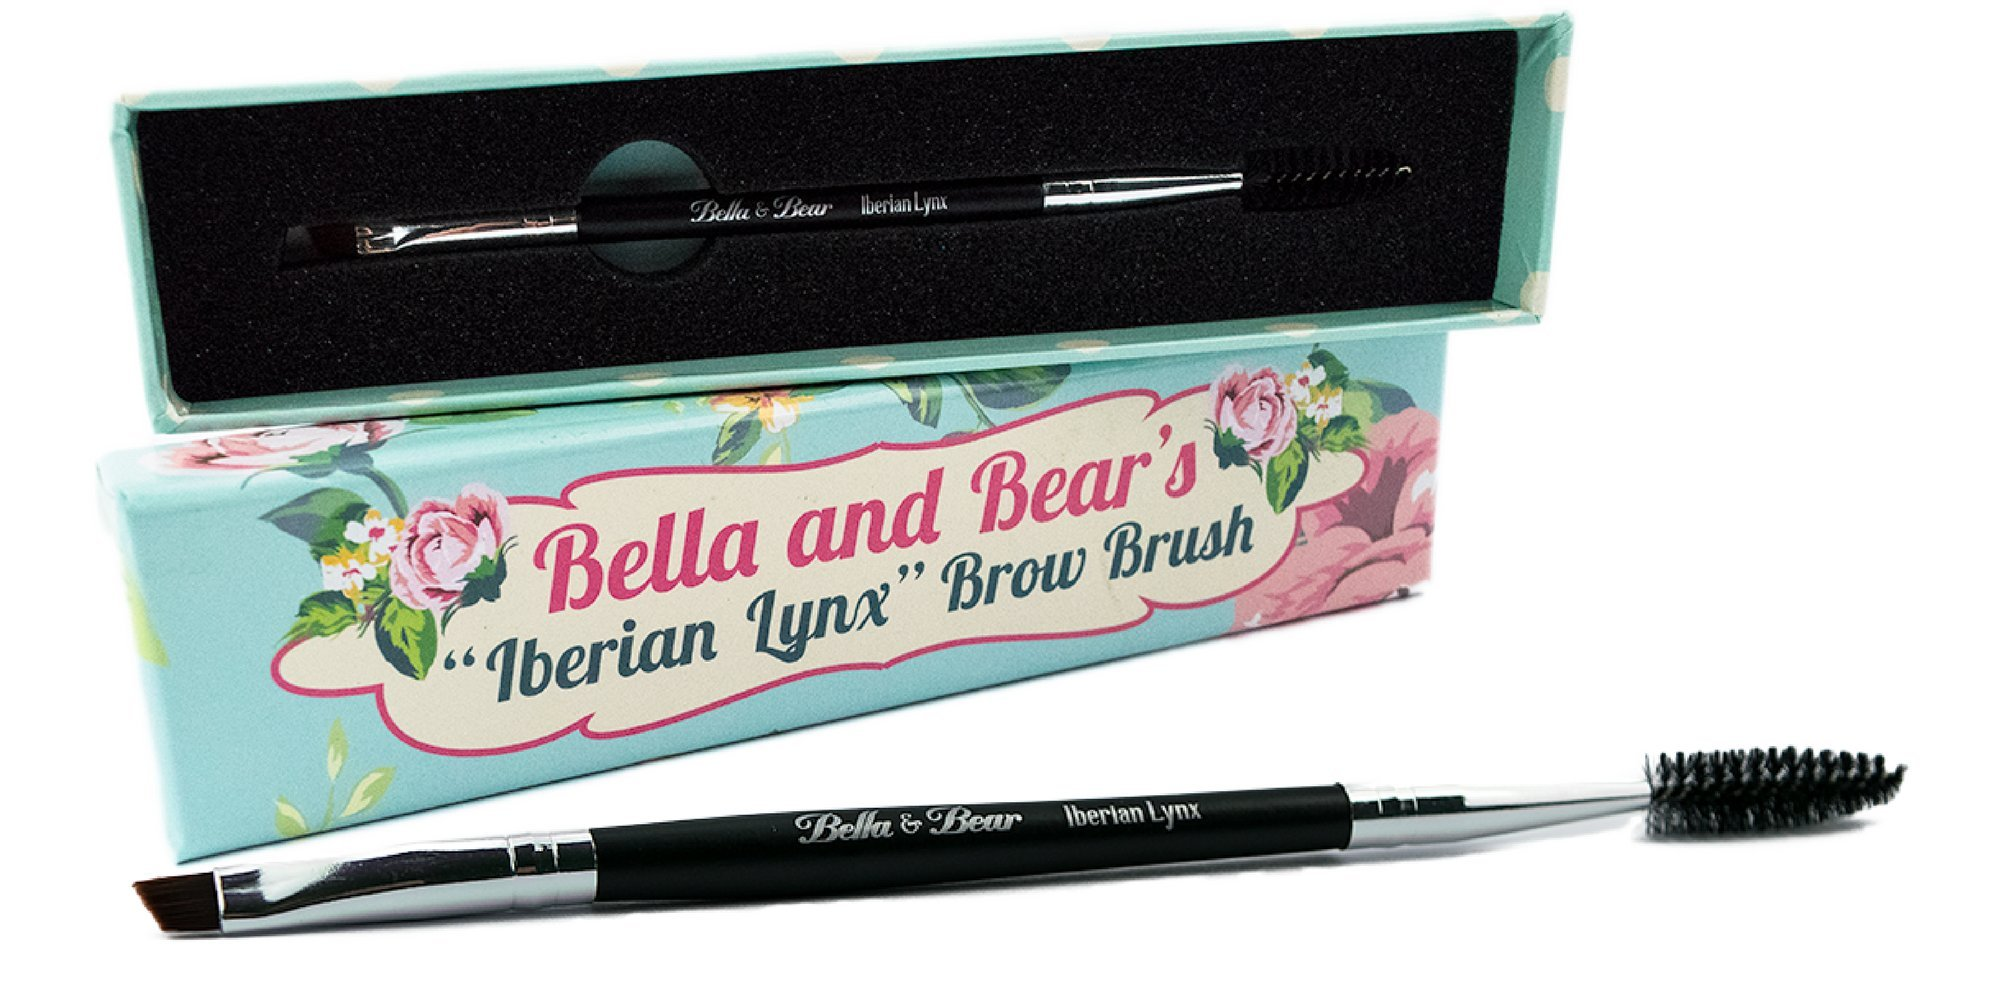 Eyebrow Brush By Bella & Bear. Our Spoolie Is The Perfect 2 In 1 Angled Brow Brush Duo For Your Eyebrows And Lashes